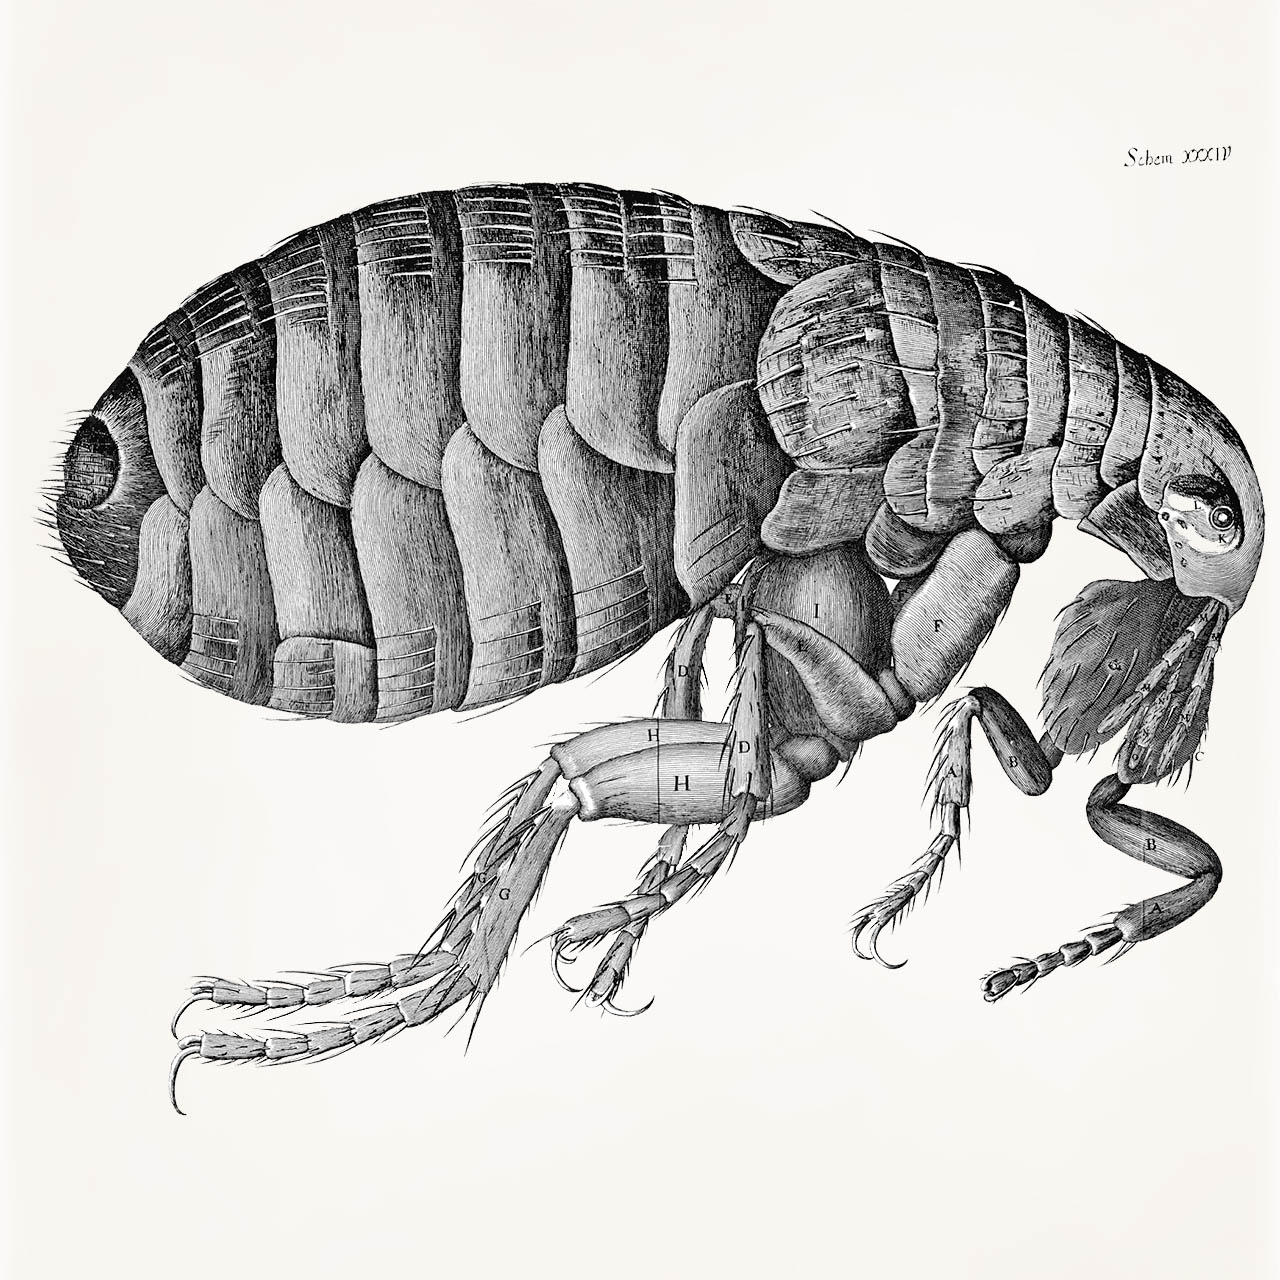 Drawn rat bubonic plague The the in carrier A